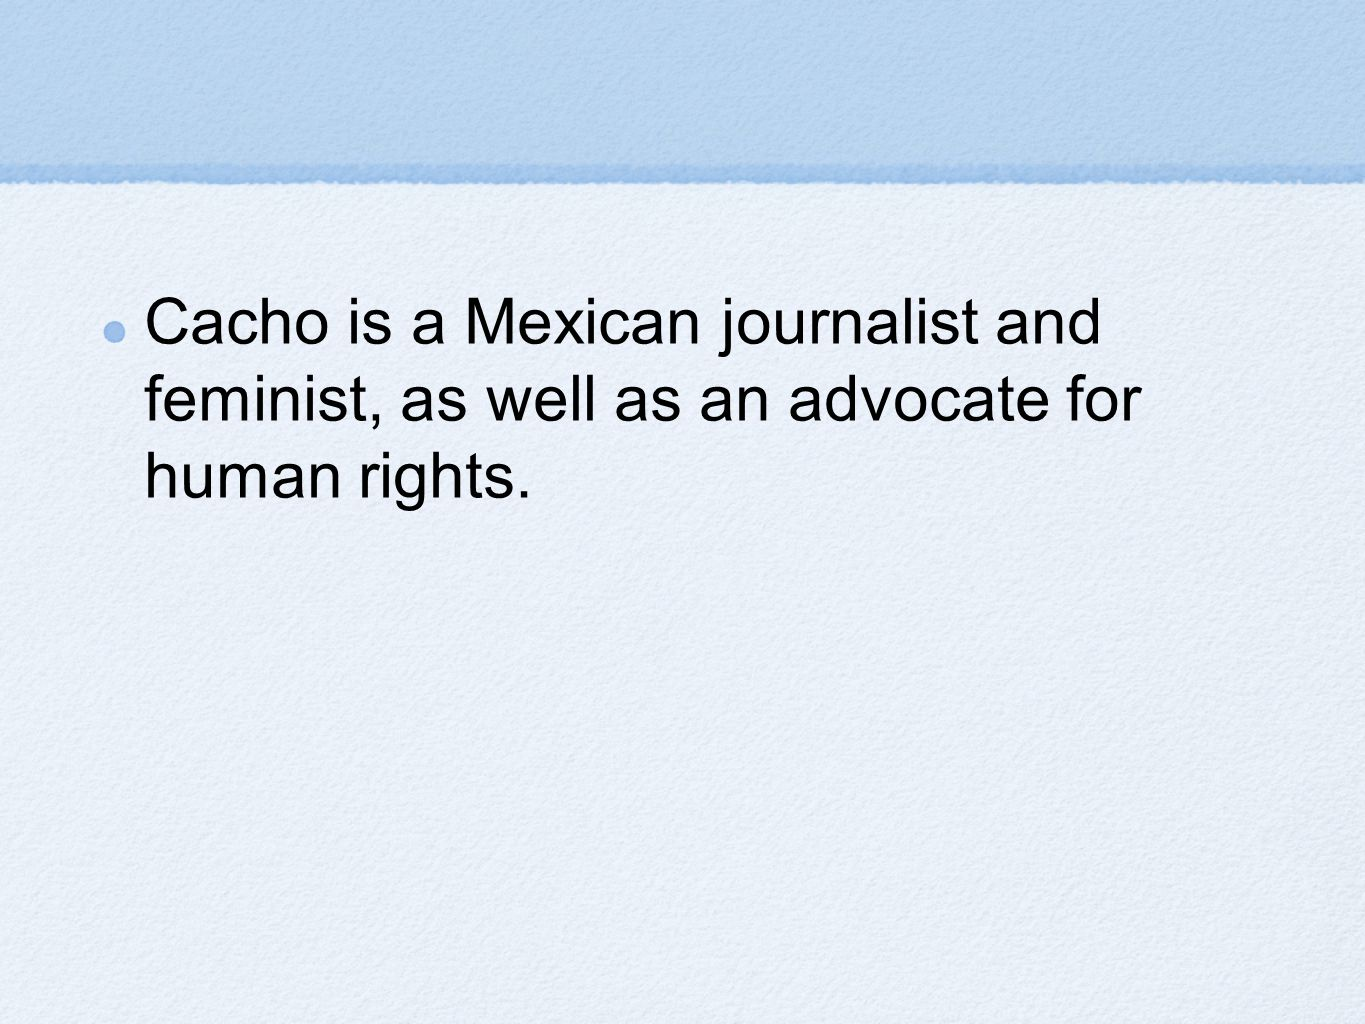 Cacho is a Mexican journalist and feminist, as well as an advocate for human rights.